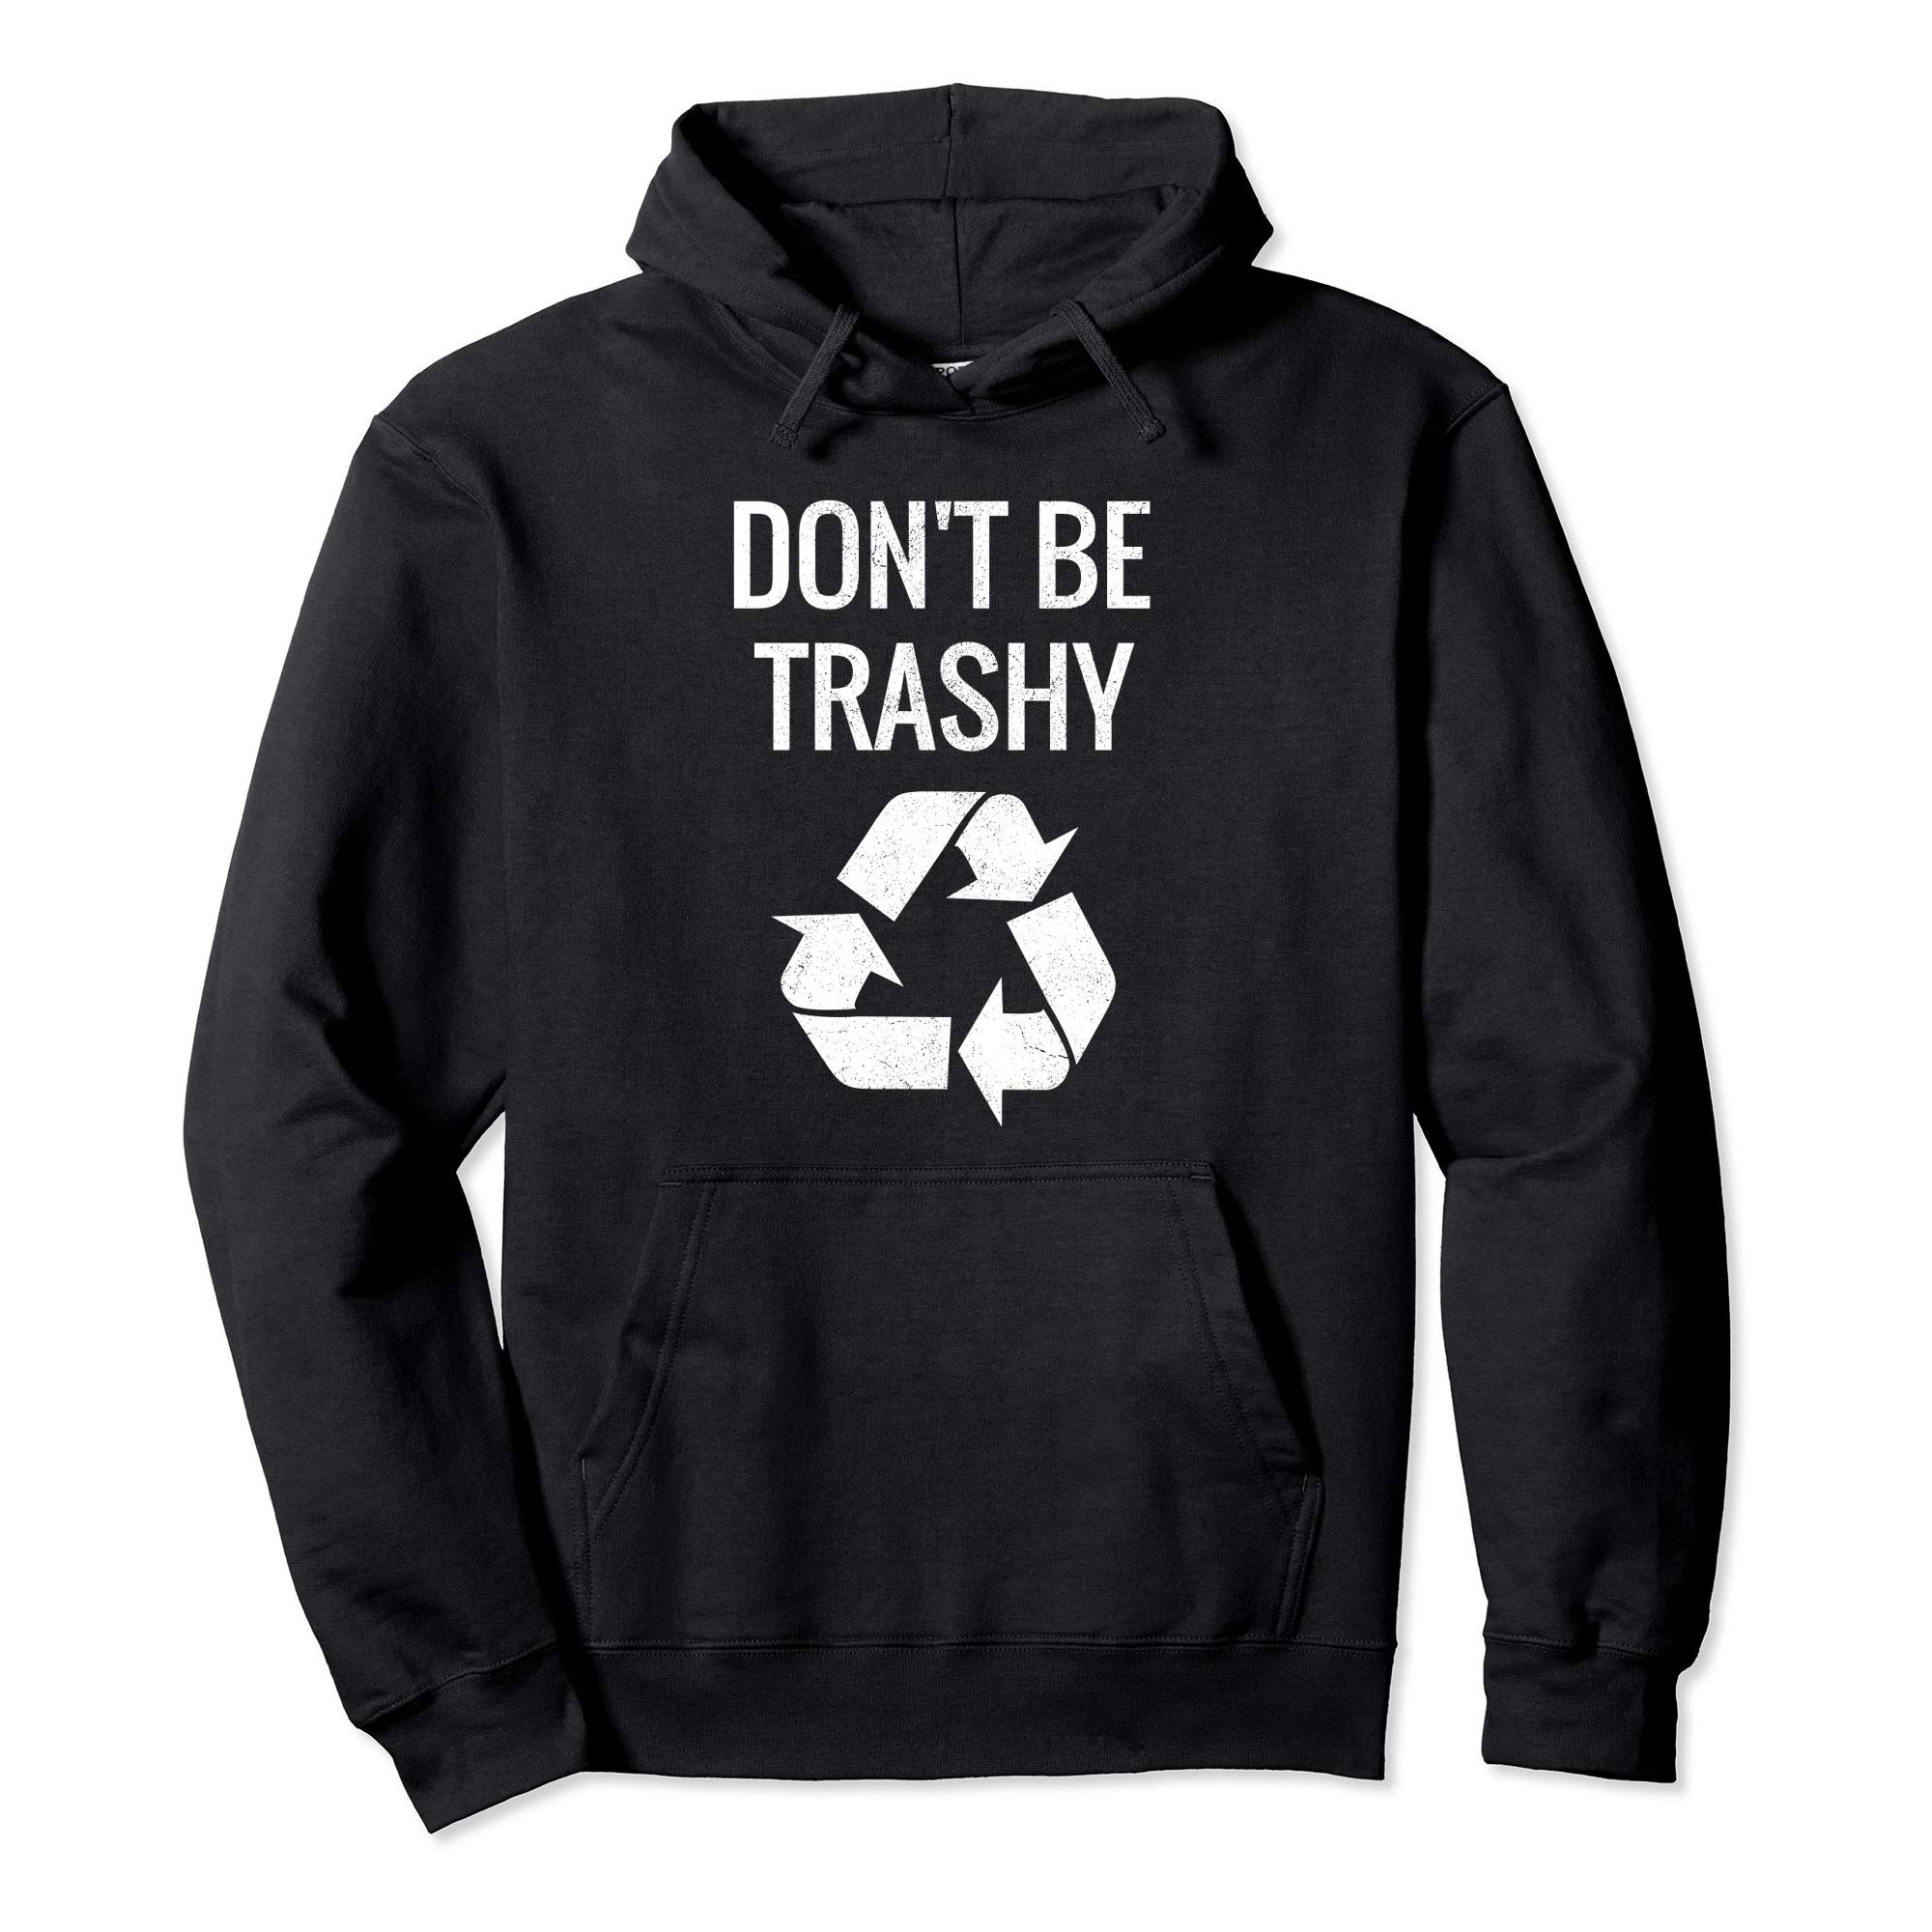 DON'T BE TRASHY GRAPHIC HOODIE IN WHITE FONT